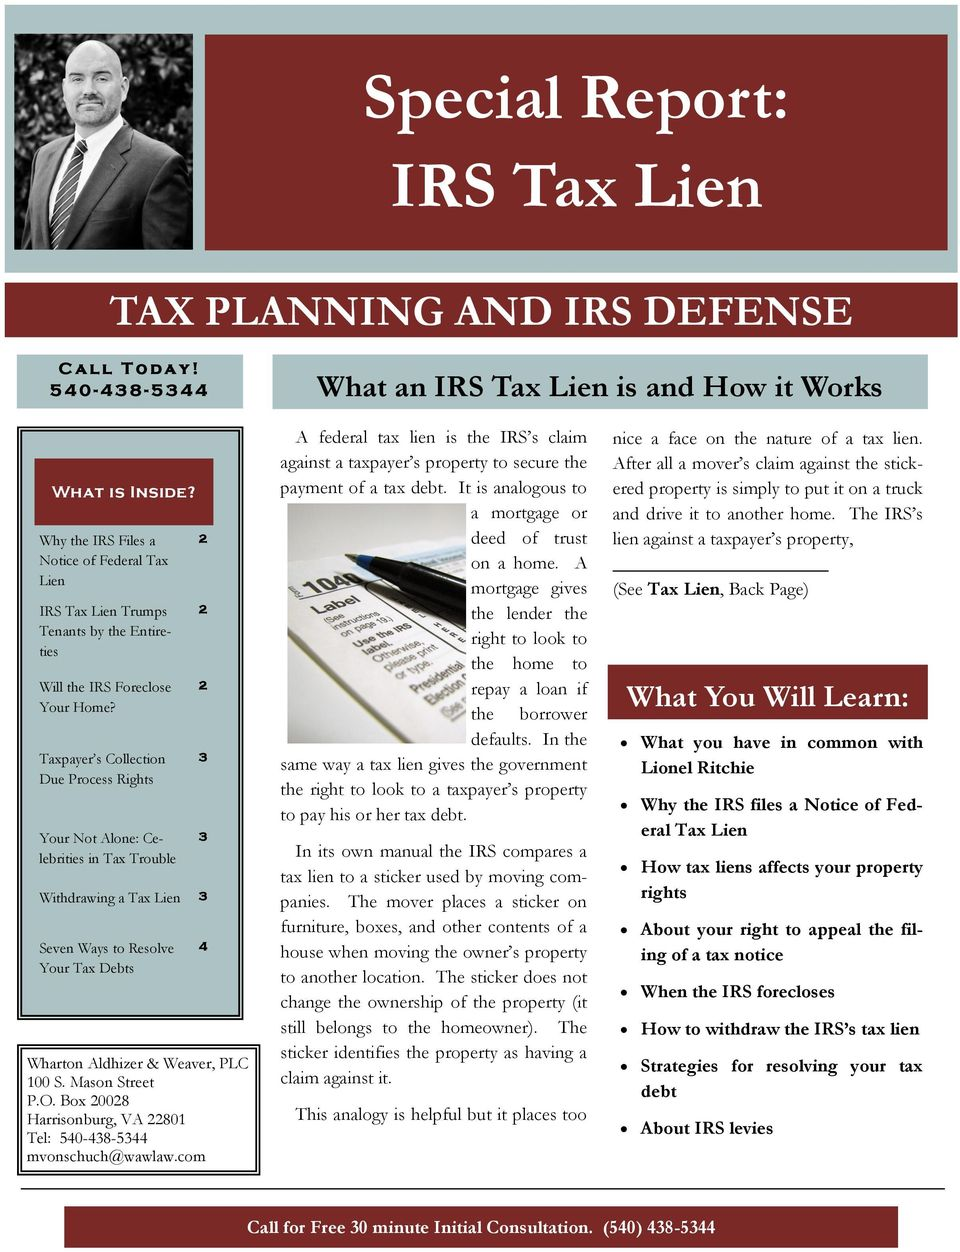 Taxpayer s Collection Due Process Rights Your Not Alone: Celebrities in Tax Trouble 2 2 2 3 3 Withdrawing a Tax Lien 3 Seven Ways to Resolve Your Tax Debts Wharton Aldhizer & Weaver, PLC 100 S.